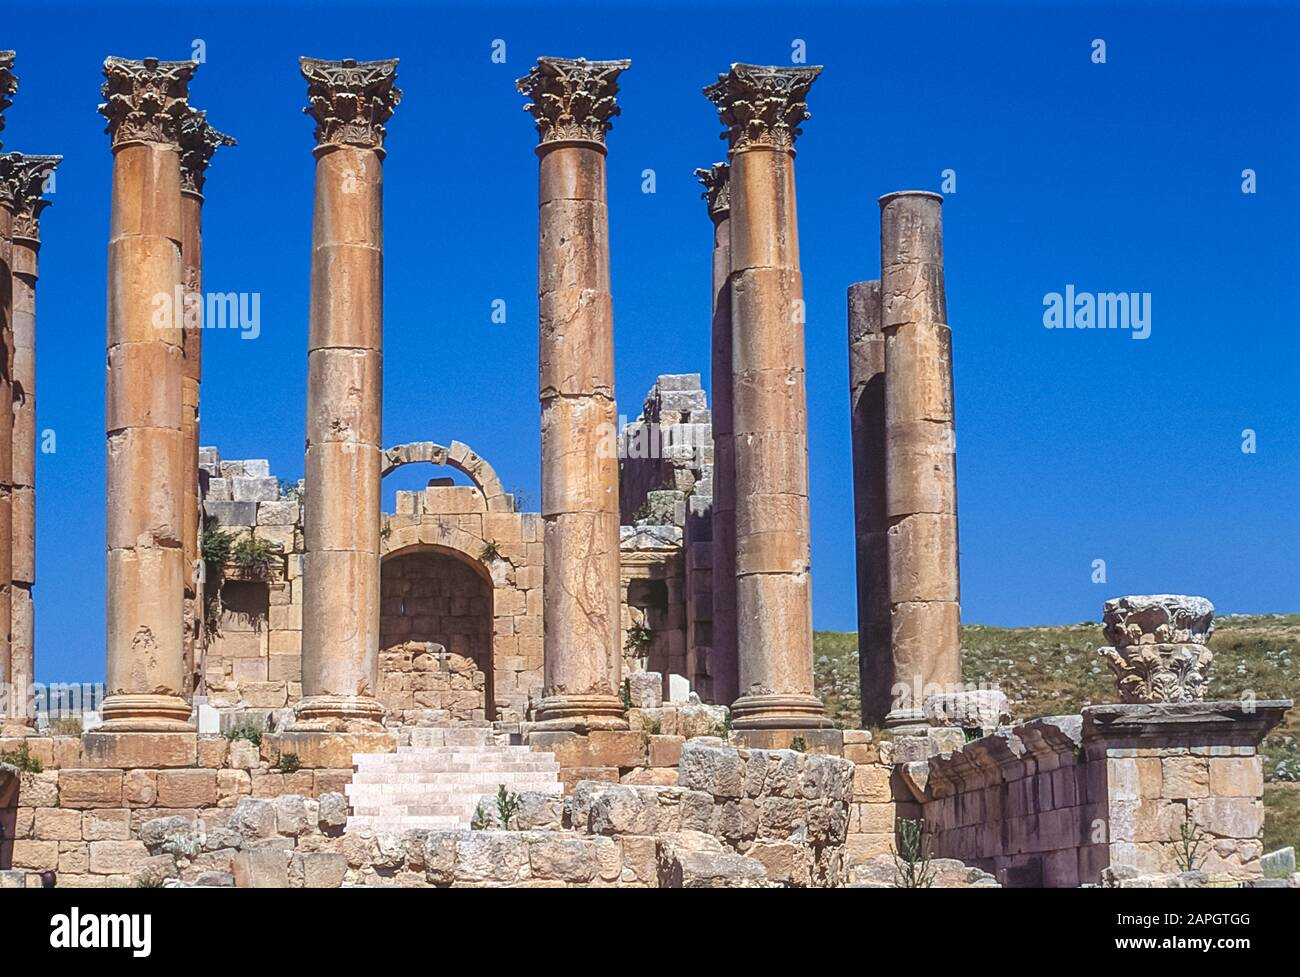 Jordan. Free standing stone columns is all that remains at the the ancient Roman City of Jerash not far from the Jordan capital city of Amman in the Middle East Stock Photo